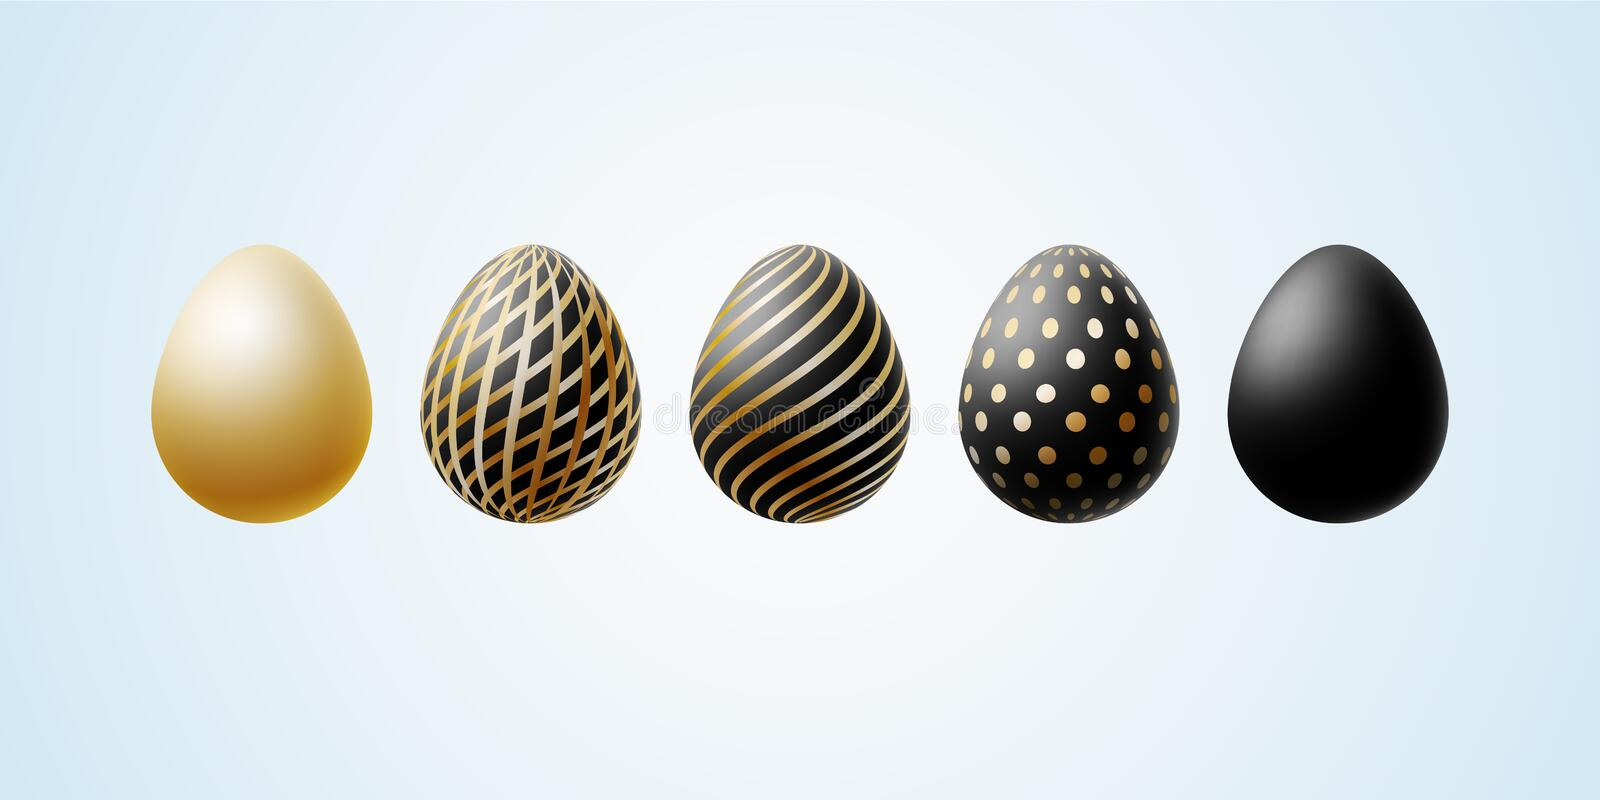 Easter egg Set of elegant modern luxury black gold Easter eggs with a spiral lines pattern specks dots on a light background Egg vector illustration